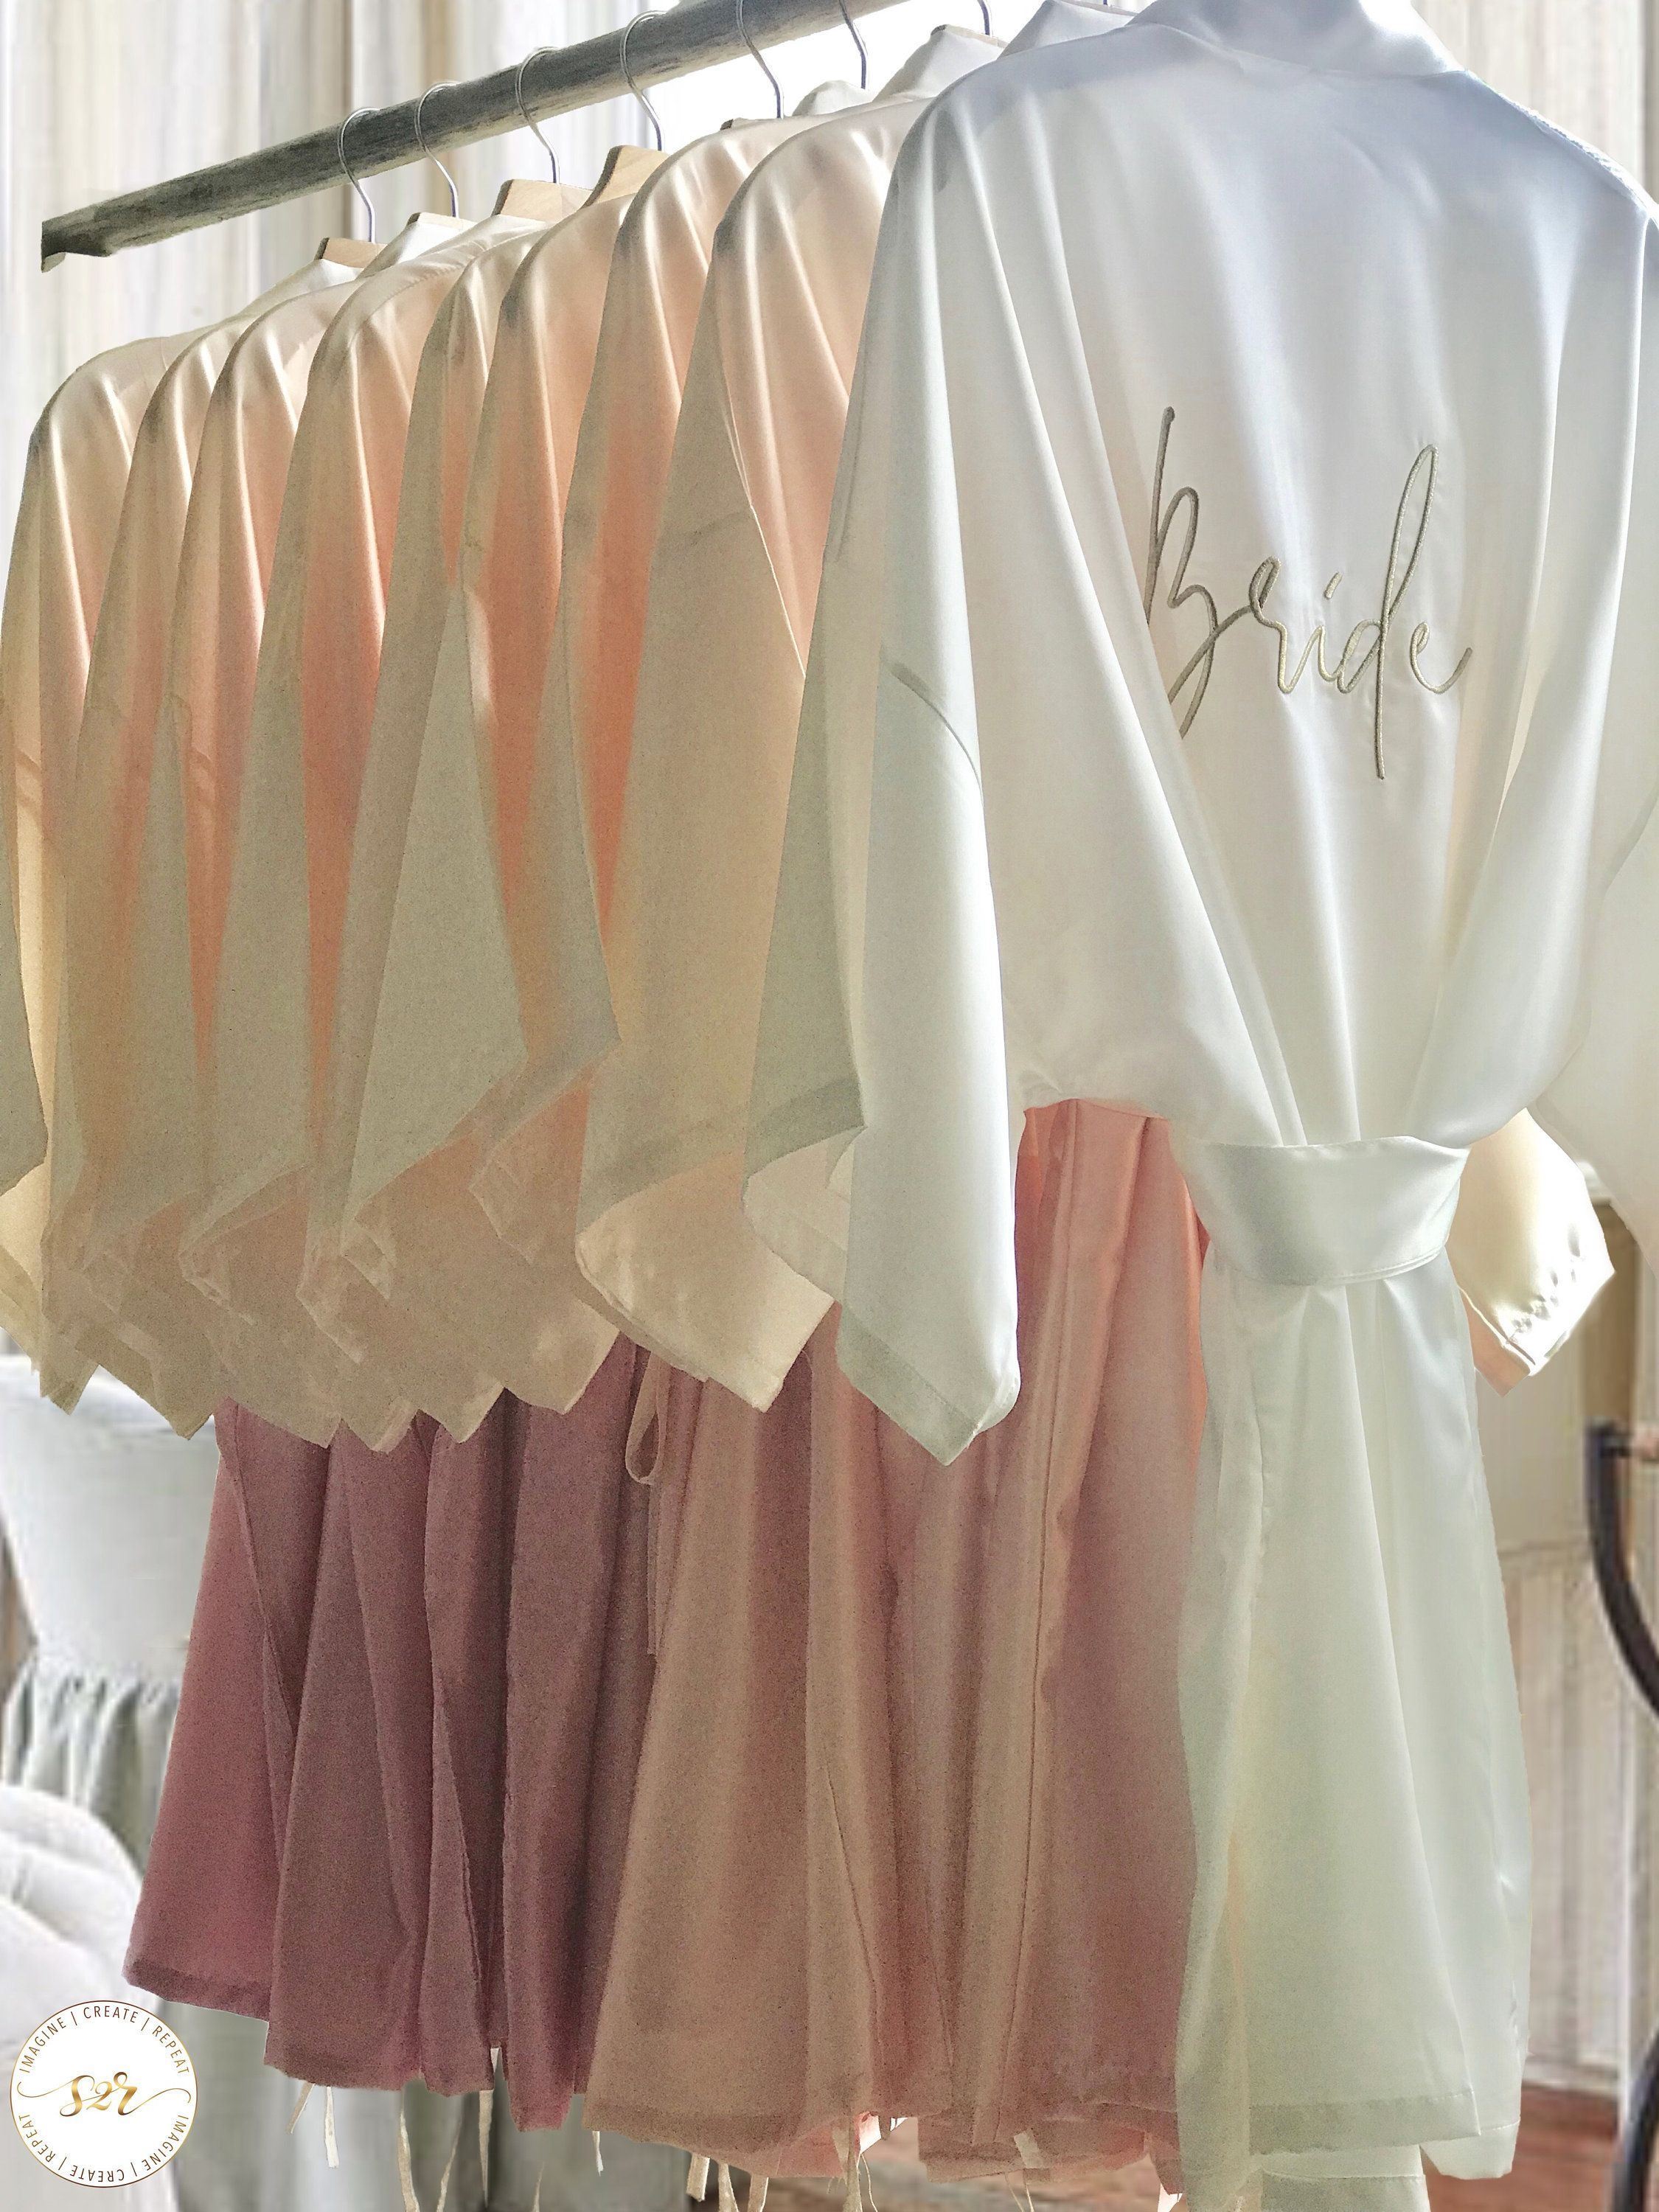 Bridal Robes,Bridesmaid Robes,Silk Robes,Satin Robes,Bridesmaid Proposal Gift,Bridesmaid Gifts,Bridal Party Robes,Maid of Honor,Ombre Robes